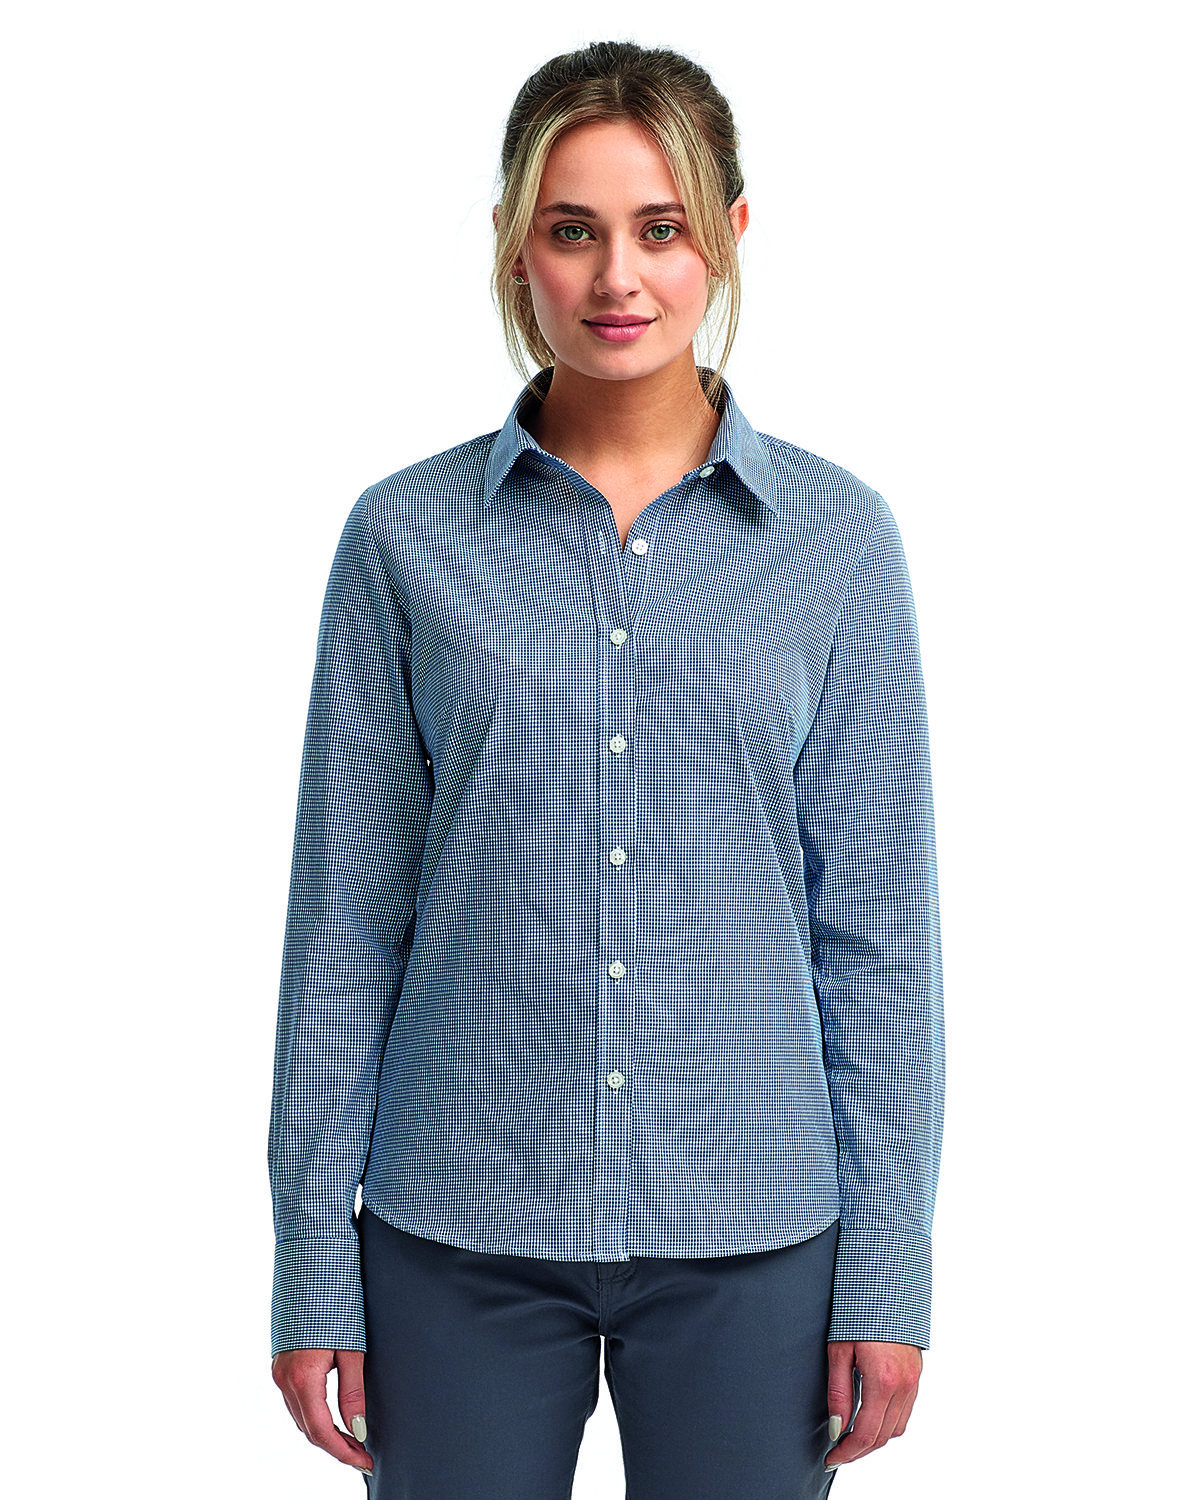 Artisan Collection by Reprime Ladies' Microcheck Gingham Long-Sleeve Cotton Shirt NAVY/ WHITE